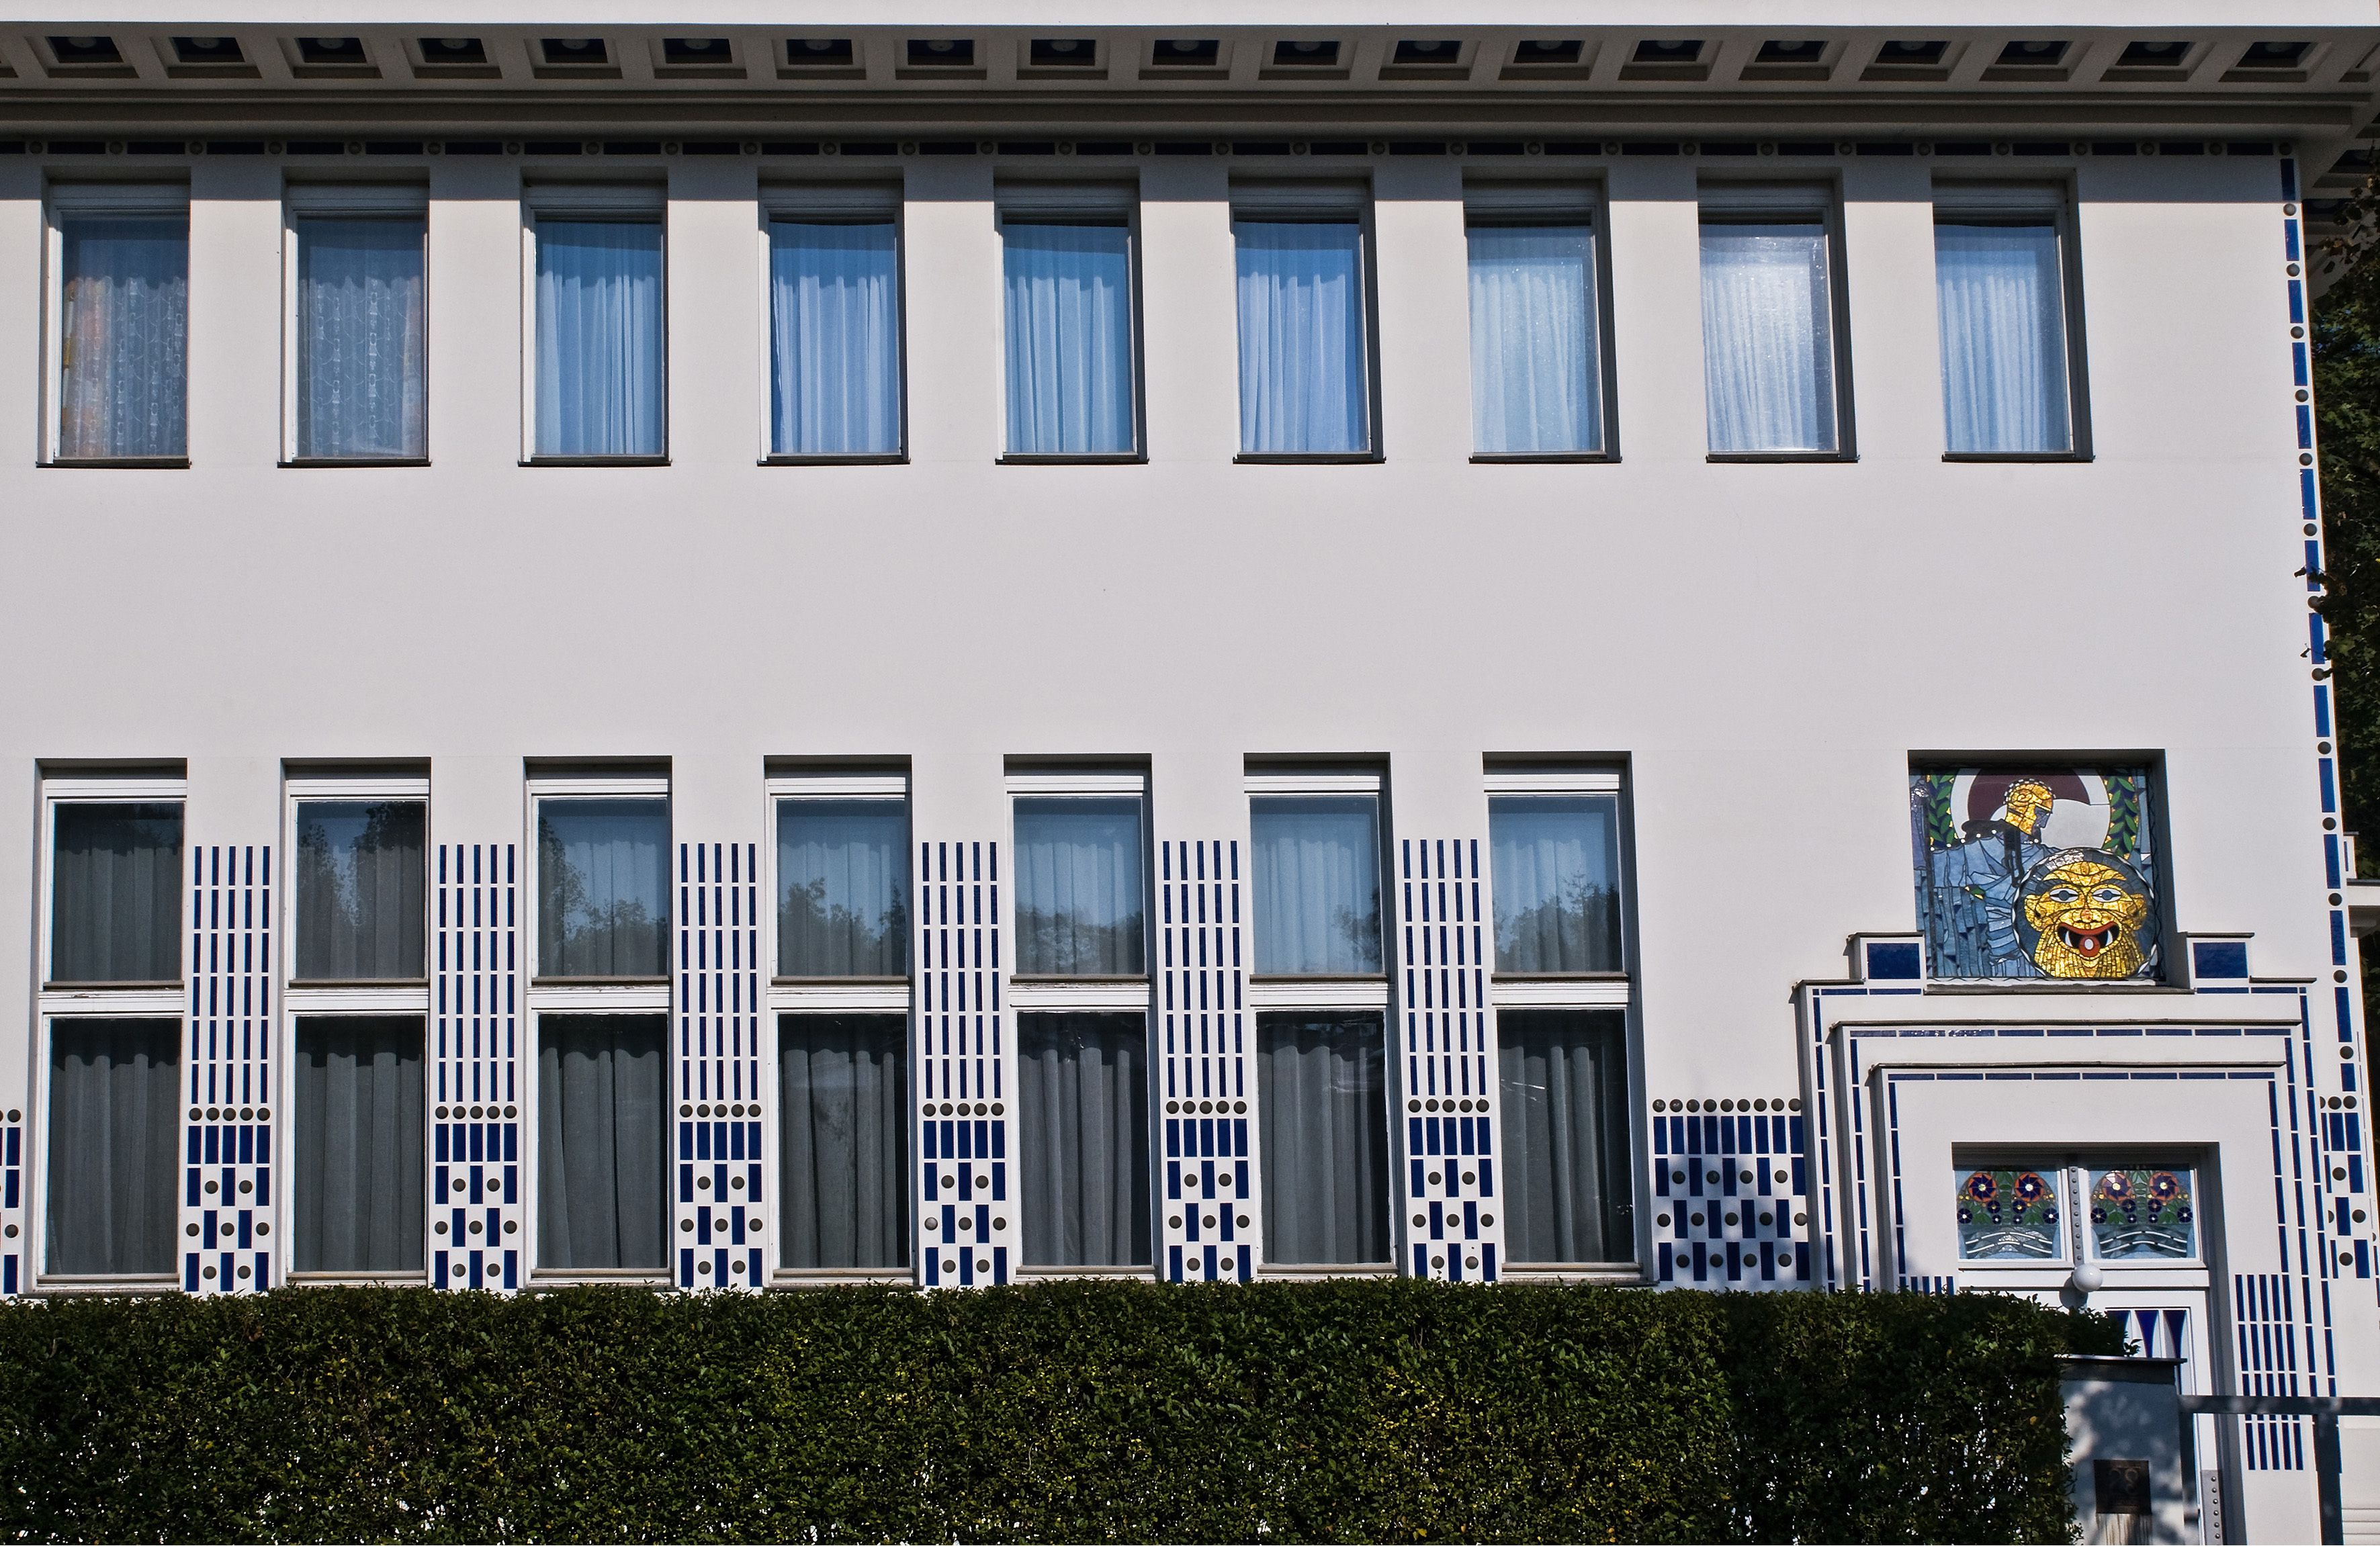 facade with symmetrical, elongated windows, overhanging eave, first floor ornamentation between the windows